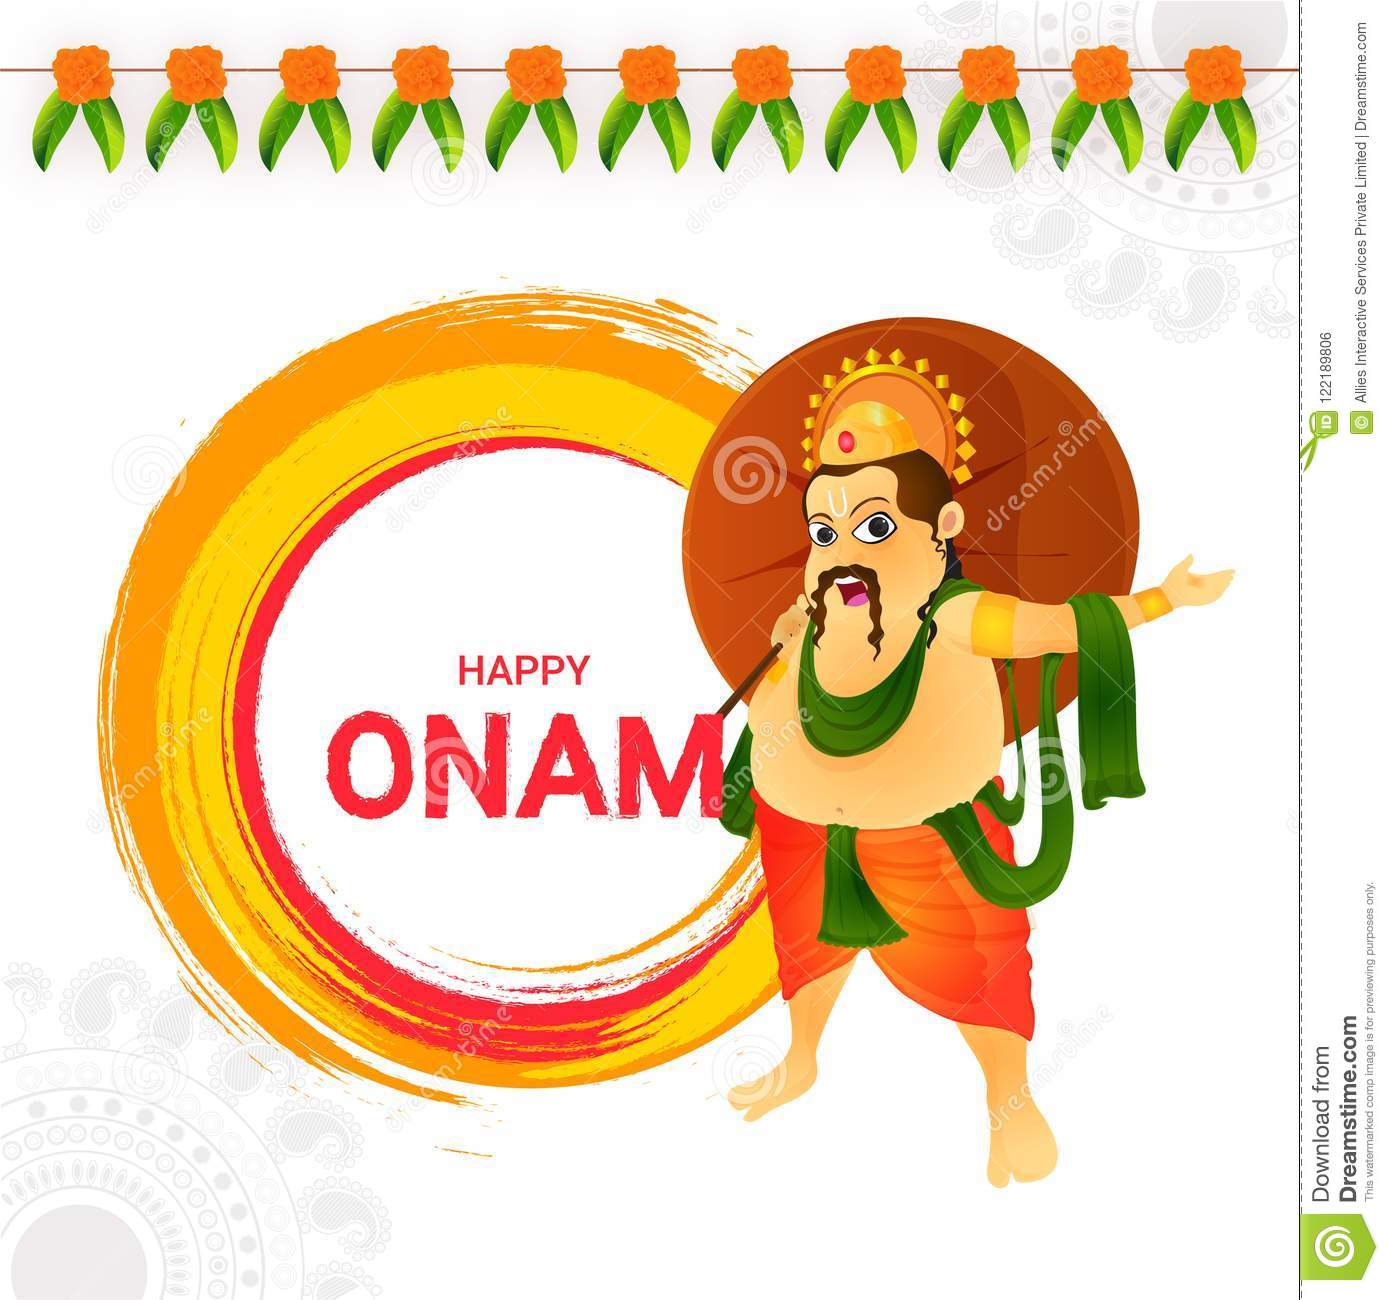 Happy Onam Greeting Card Design With Illustration Of King Mahaba